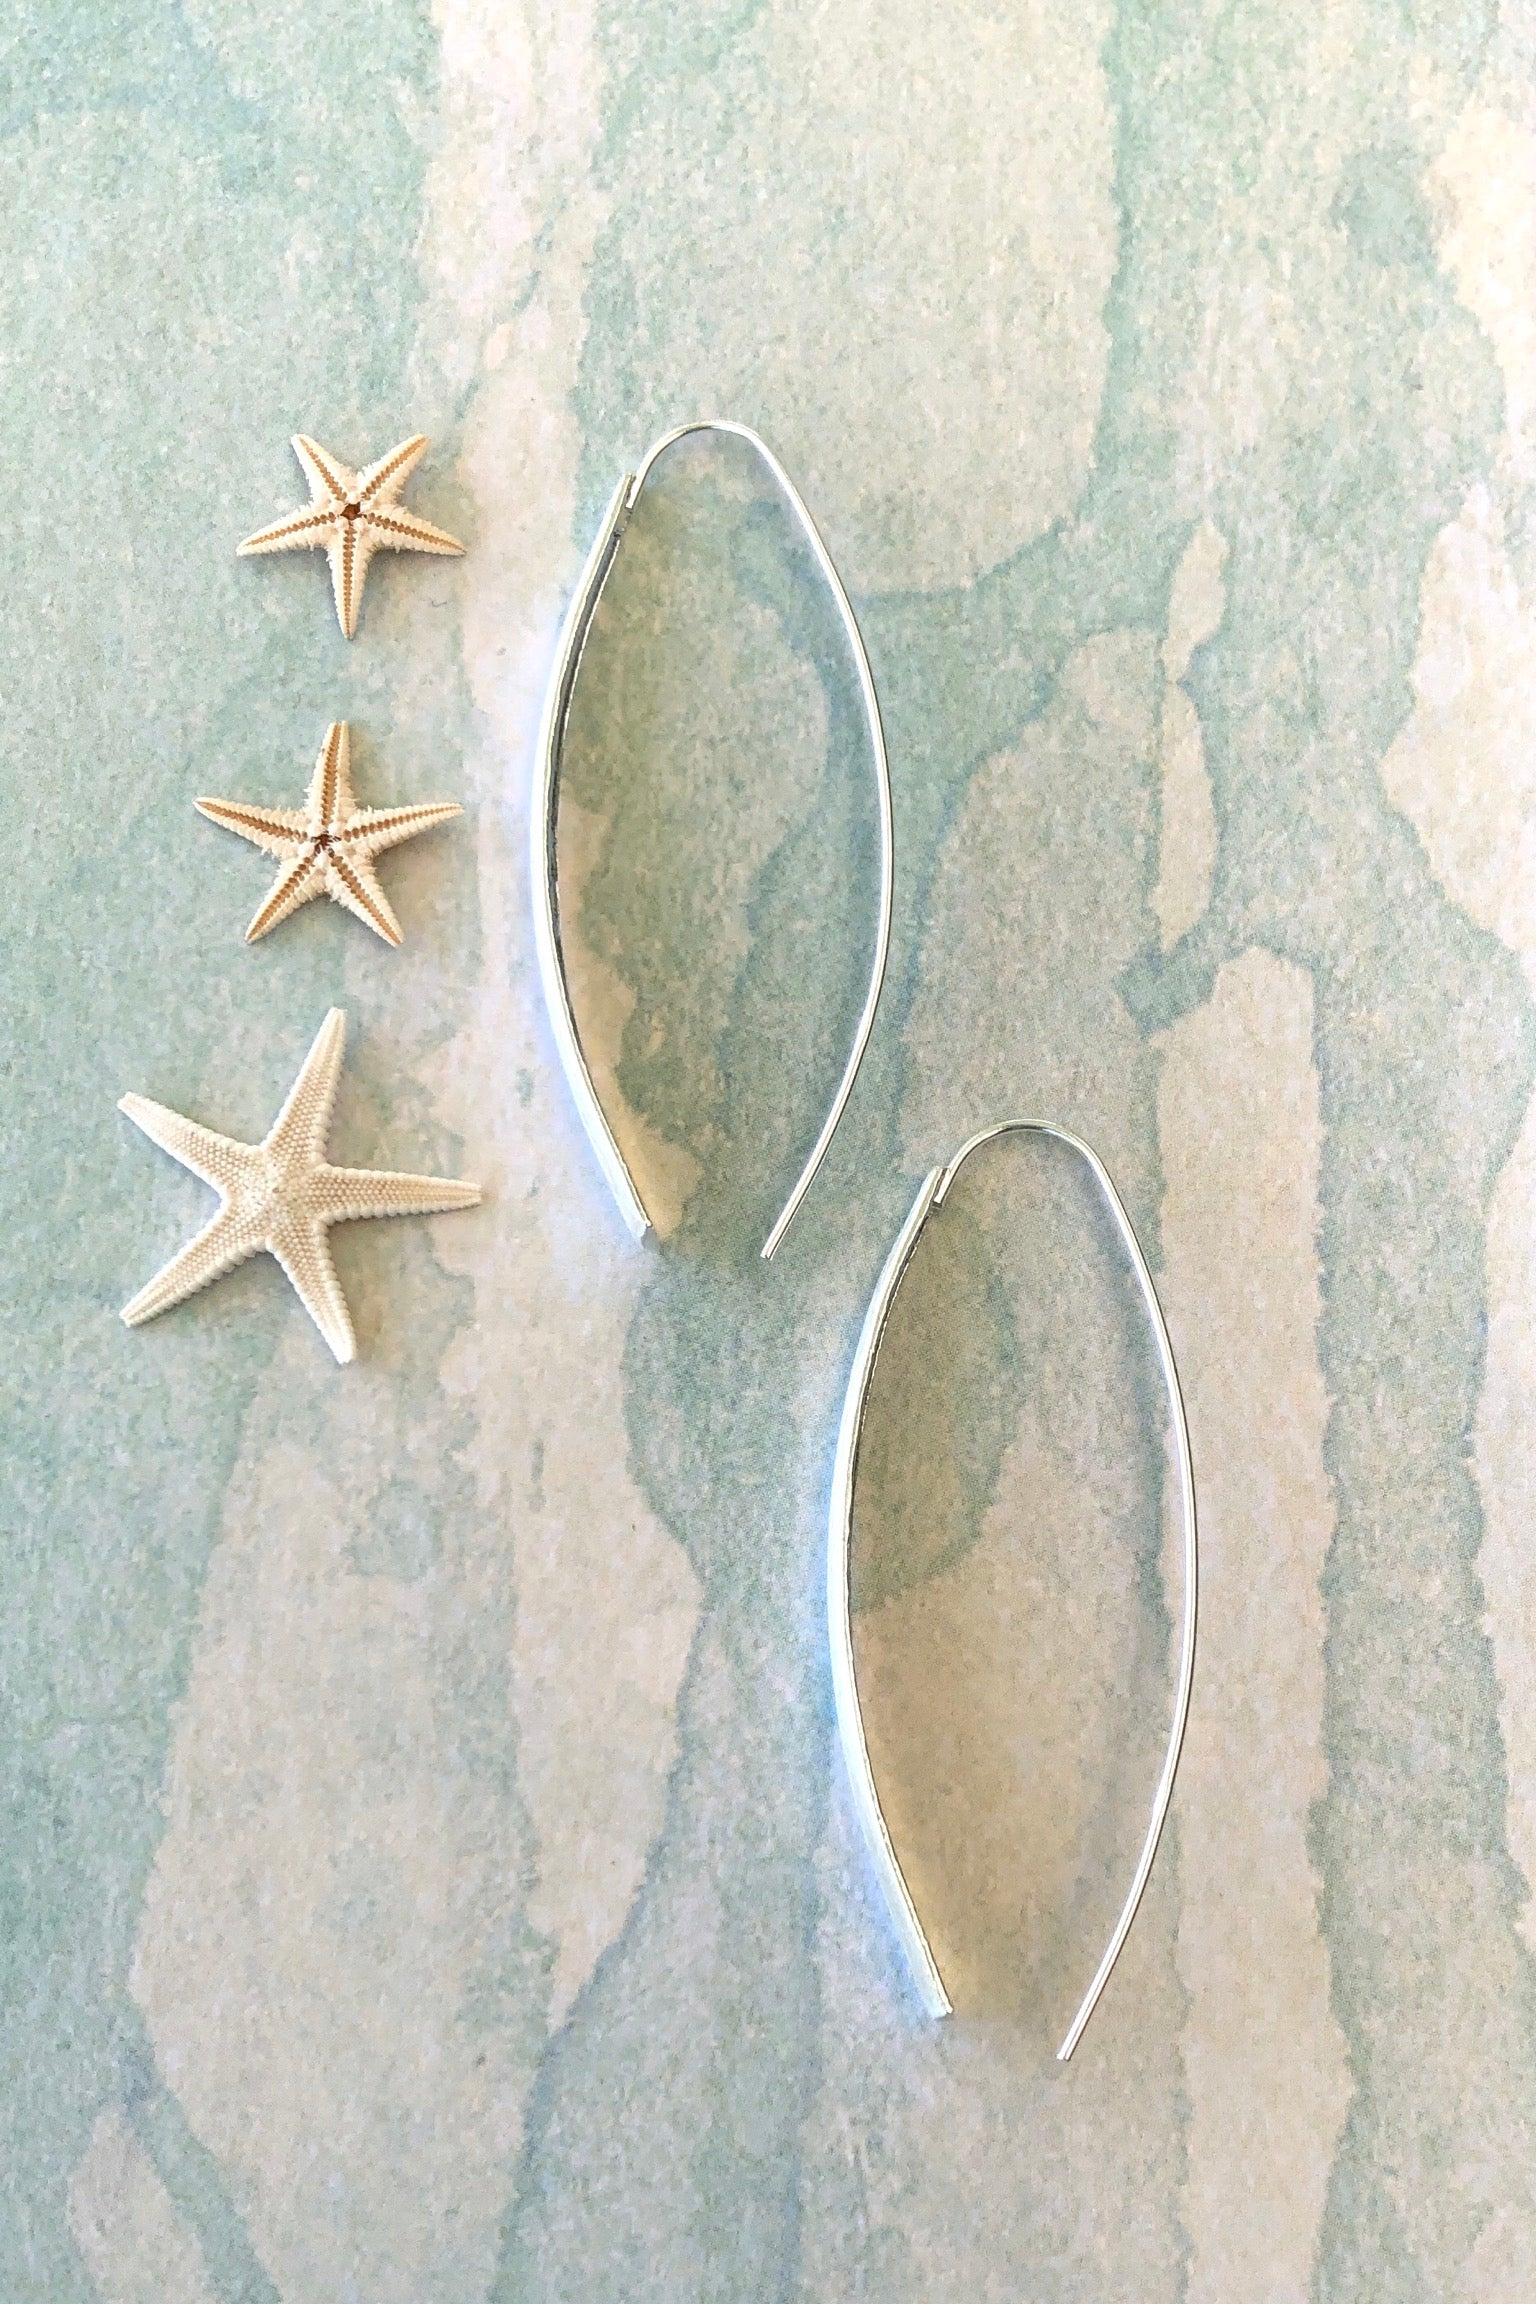 Earrings Sala Swoop in 925 Silver. Long structured ultra fine silver that hooks through the ear, bring bohemian jewels